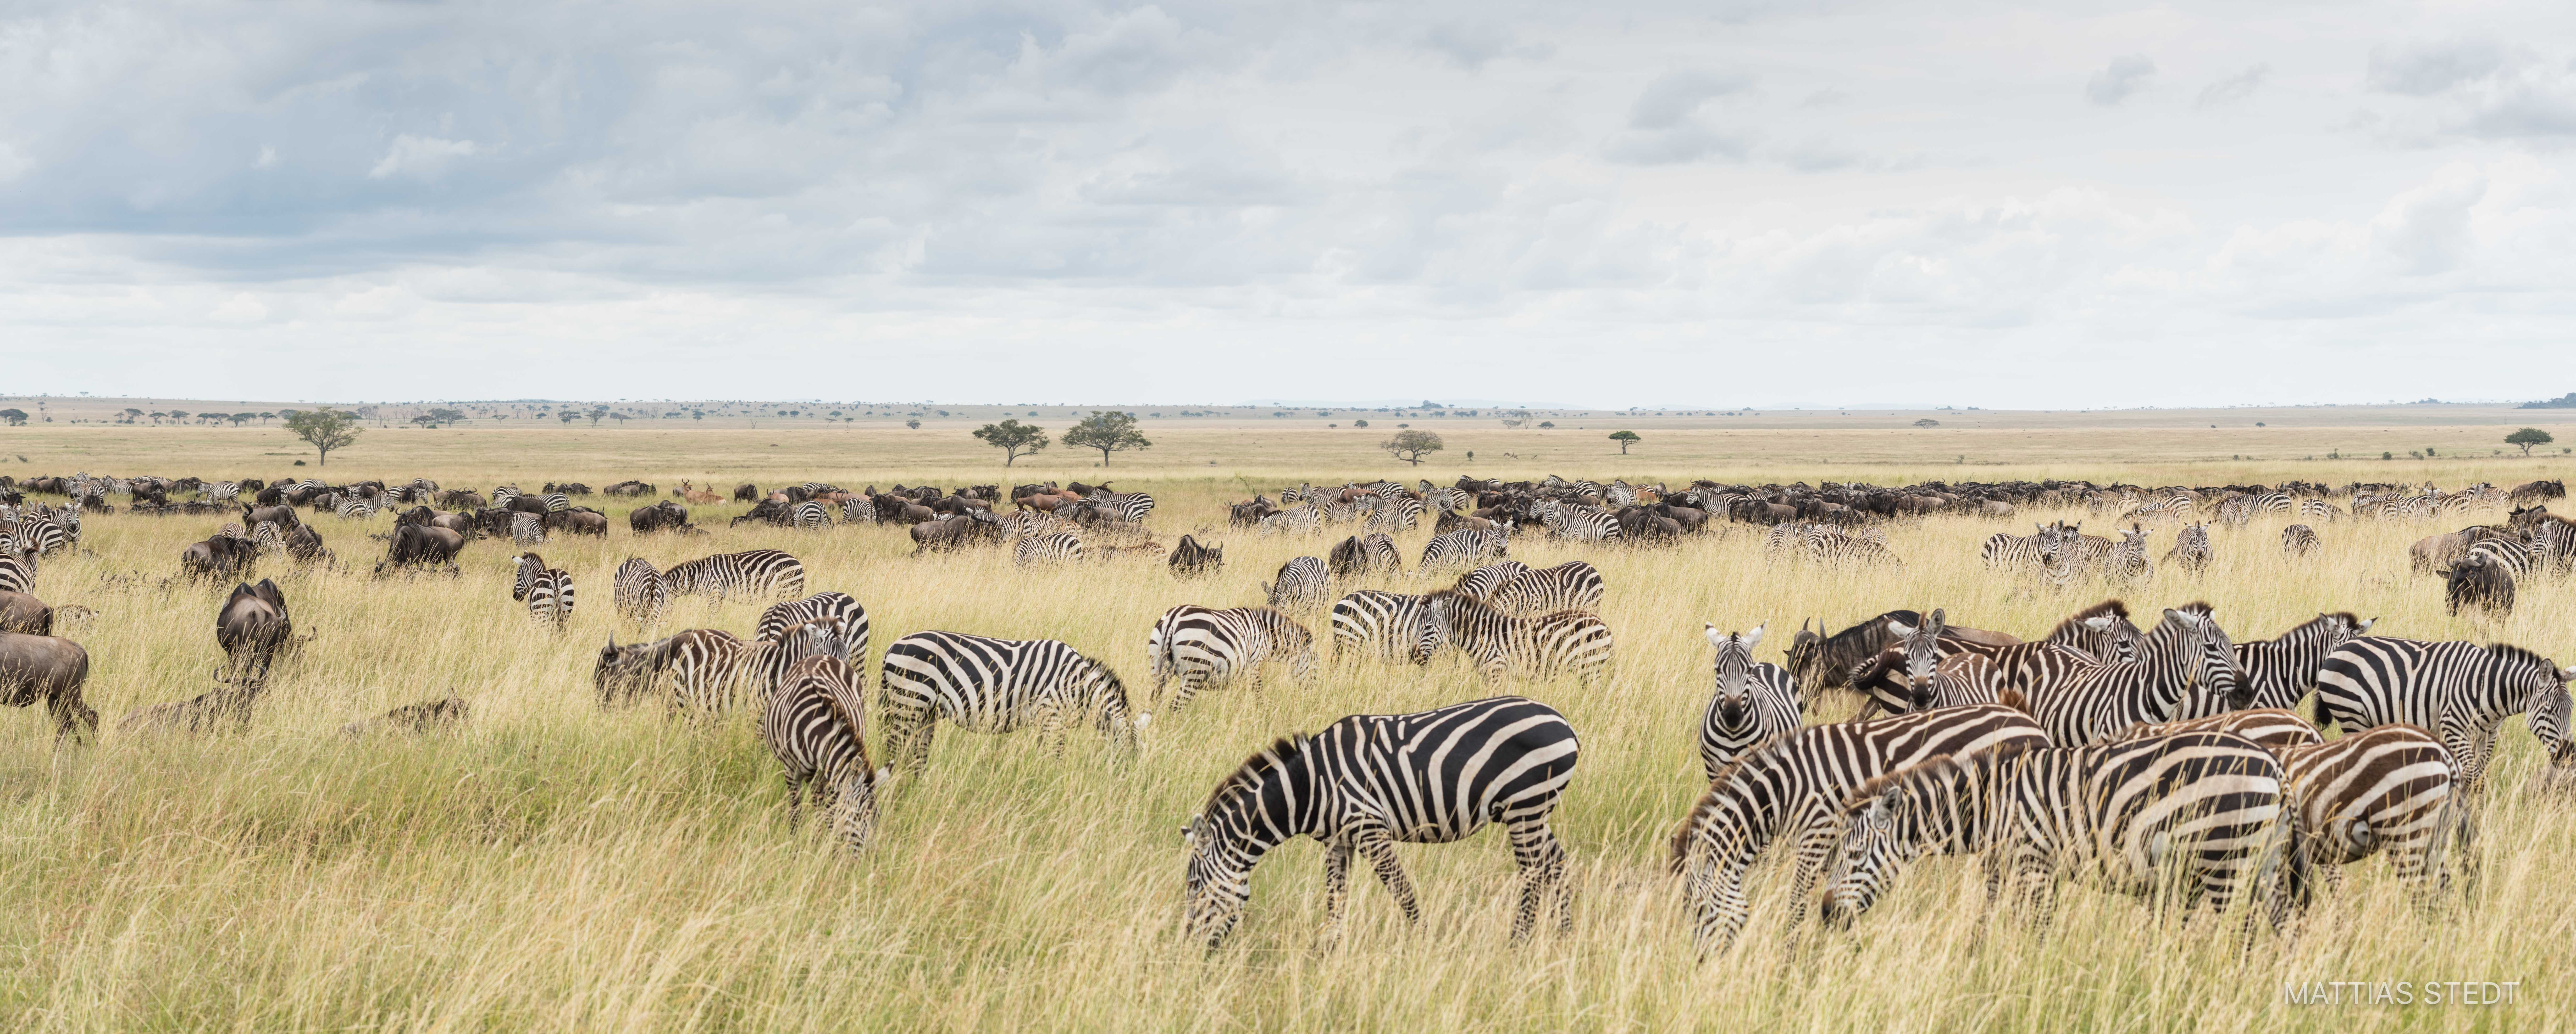 Great migration, Tanzania